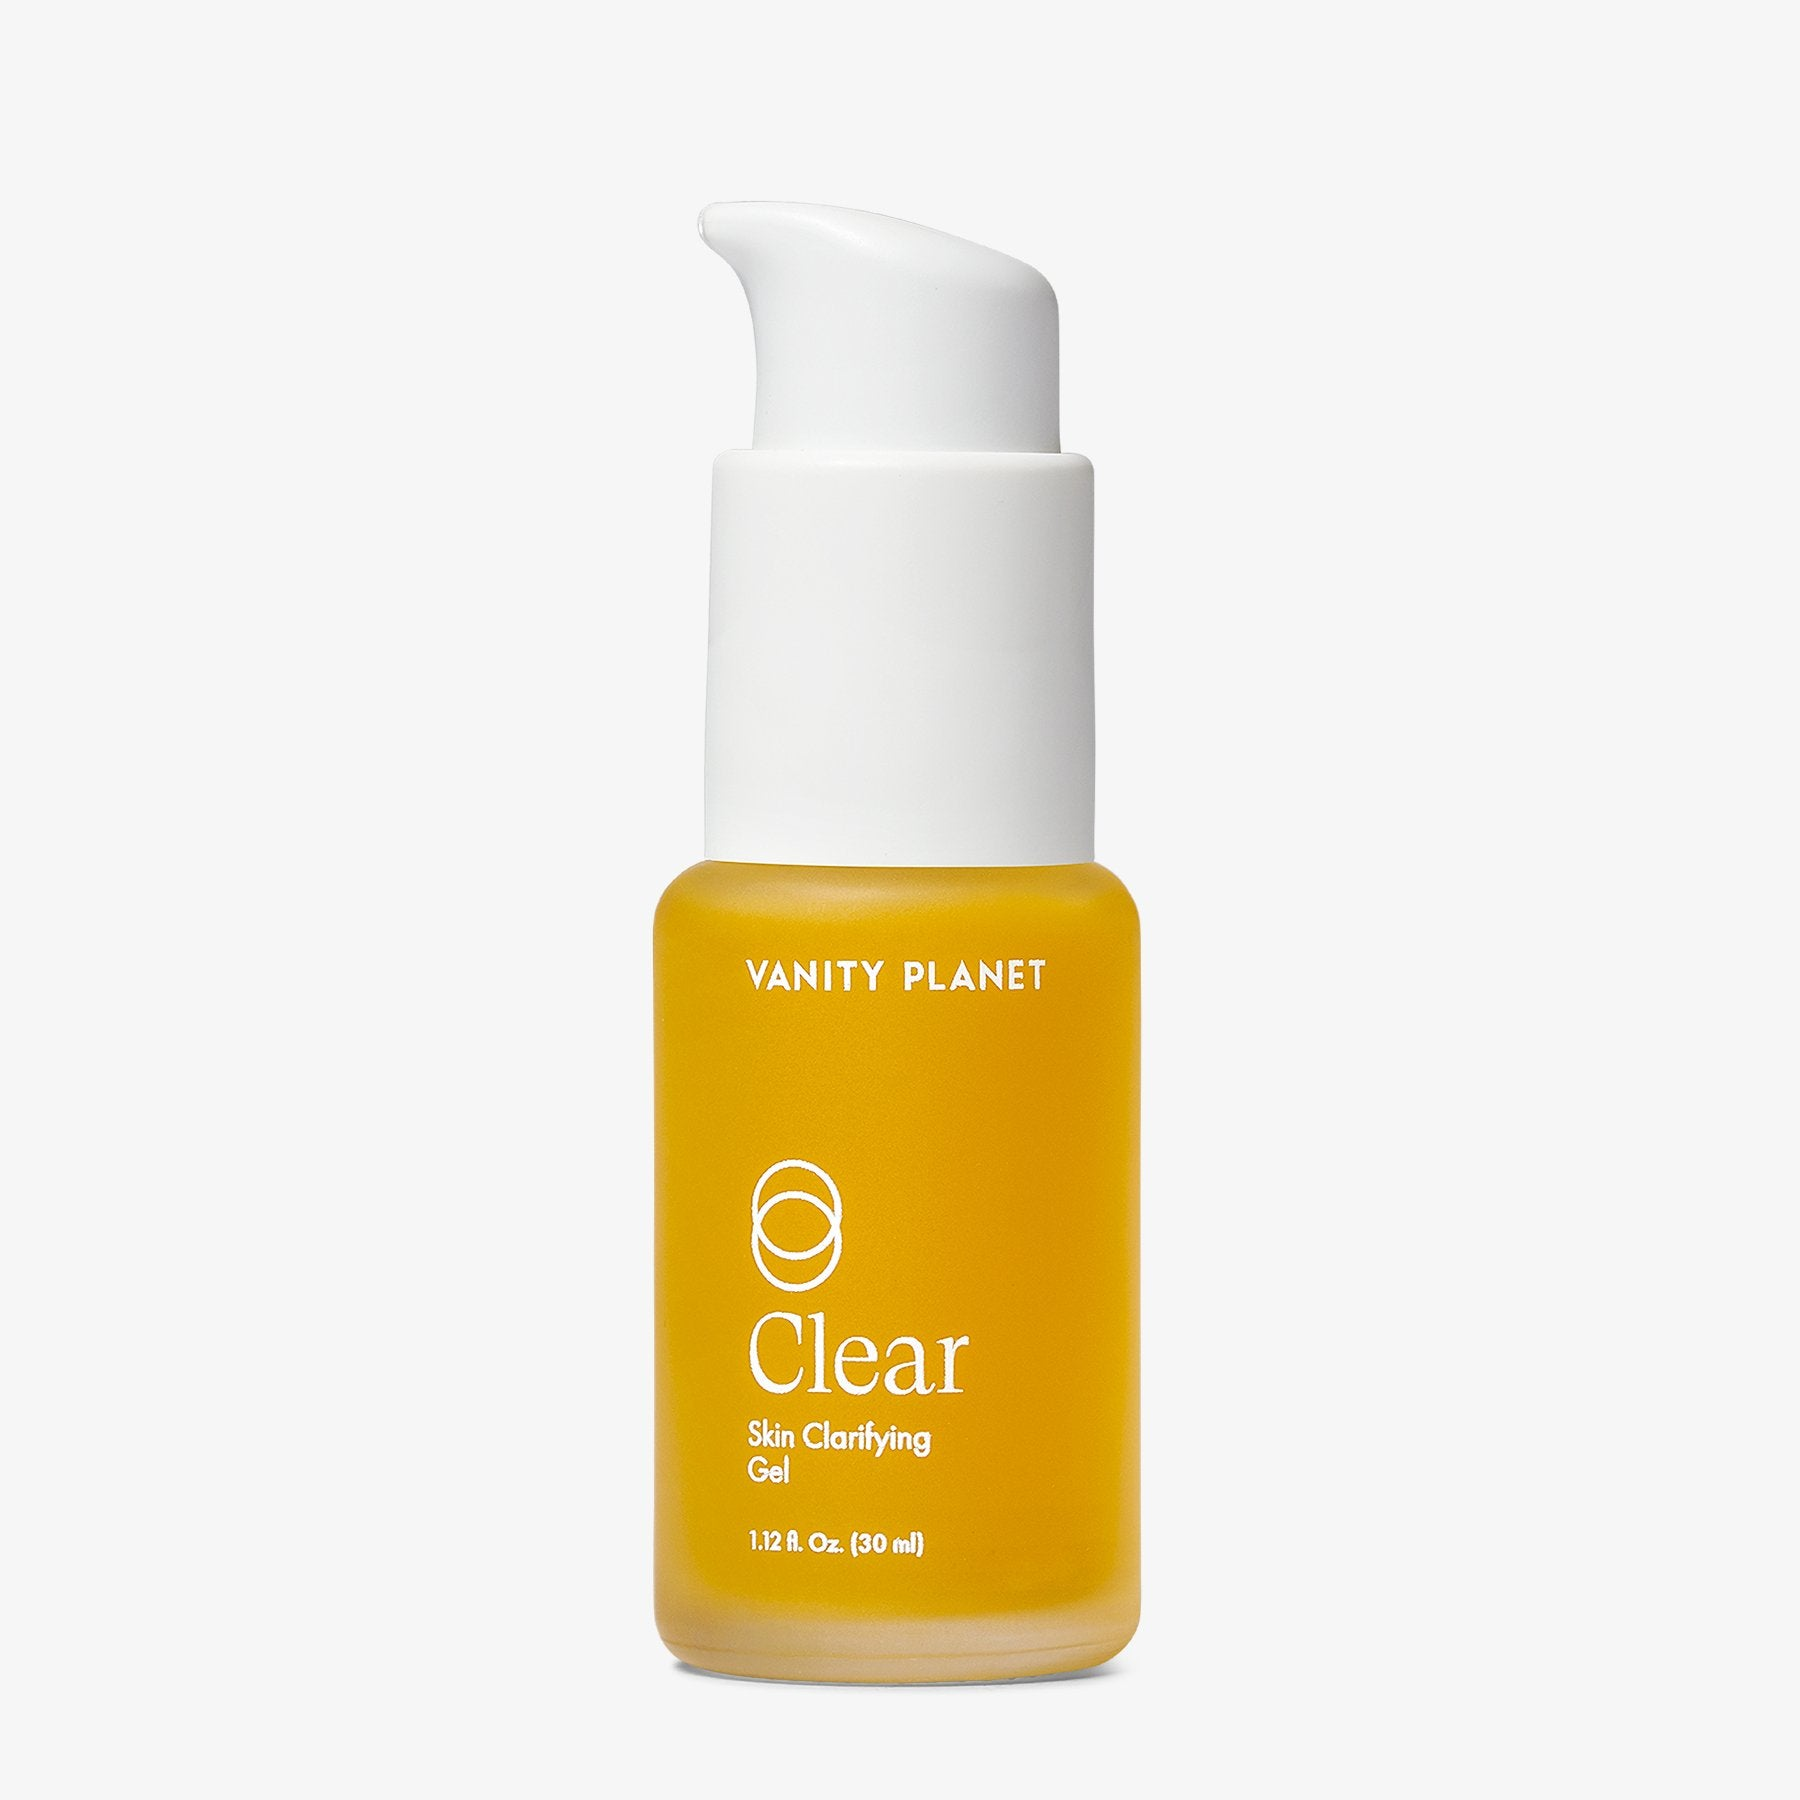 Clear | Skin Clarifying Gel.